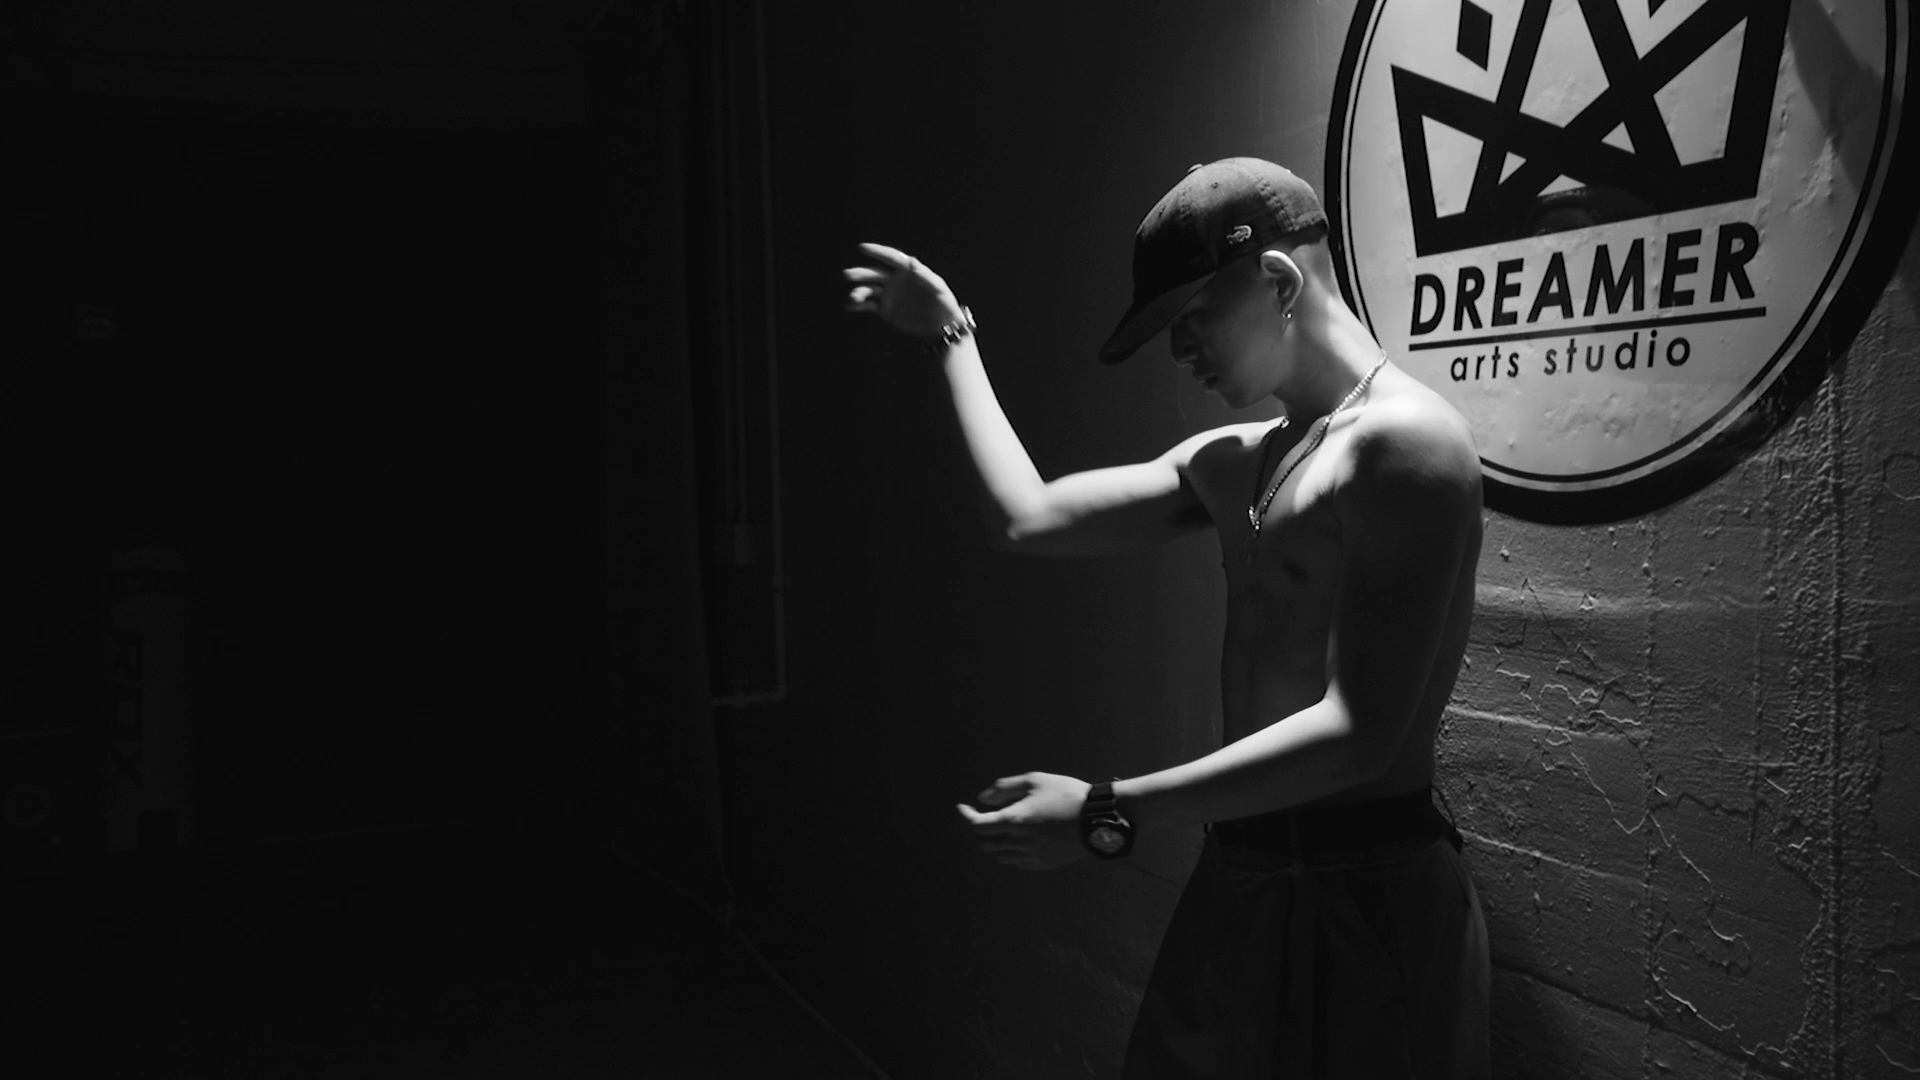 A high contrast B&W image of a young man making a graceful dancer's pose with his arms. He is shirtless and stands in front of a round sign reading Dreamer Art Studio.